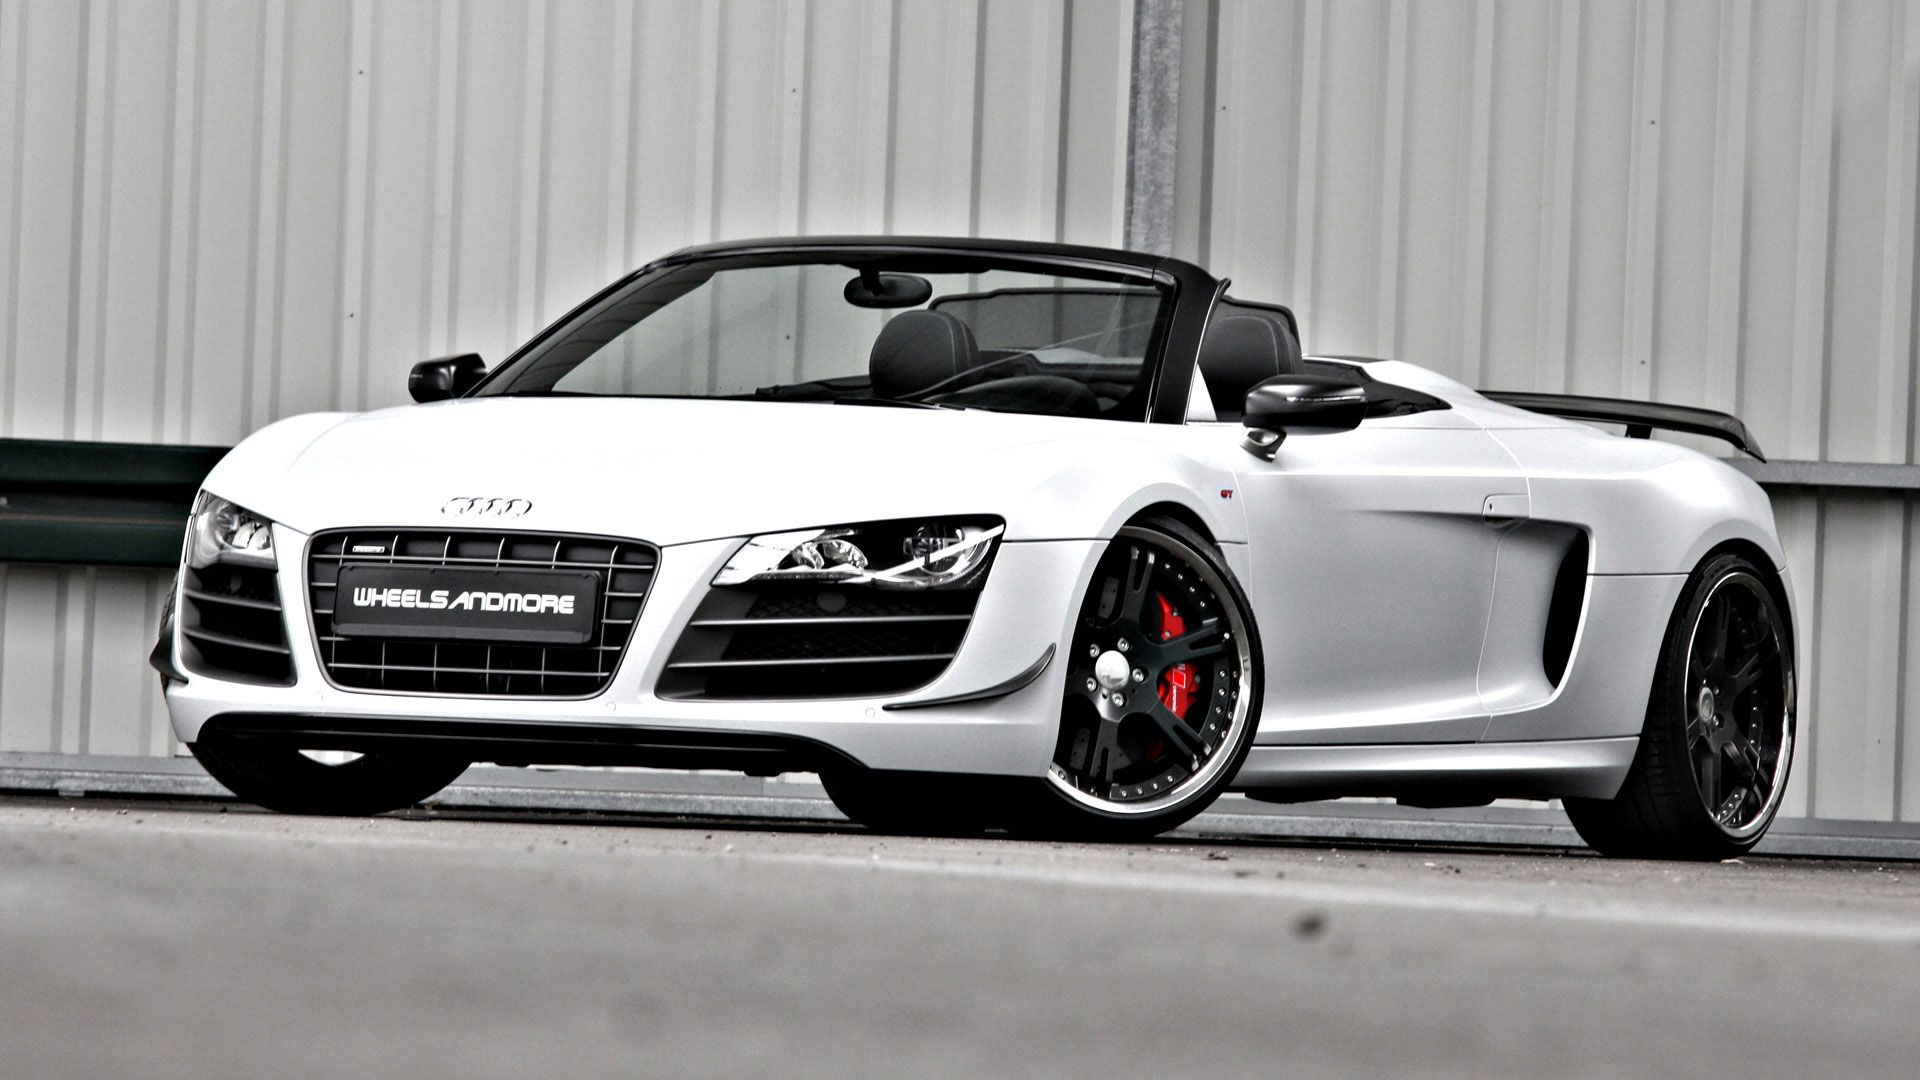 Check this convertible white audi r8 it s stunning best bikes pinterest audi r8 audi and convertible